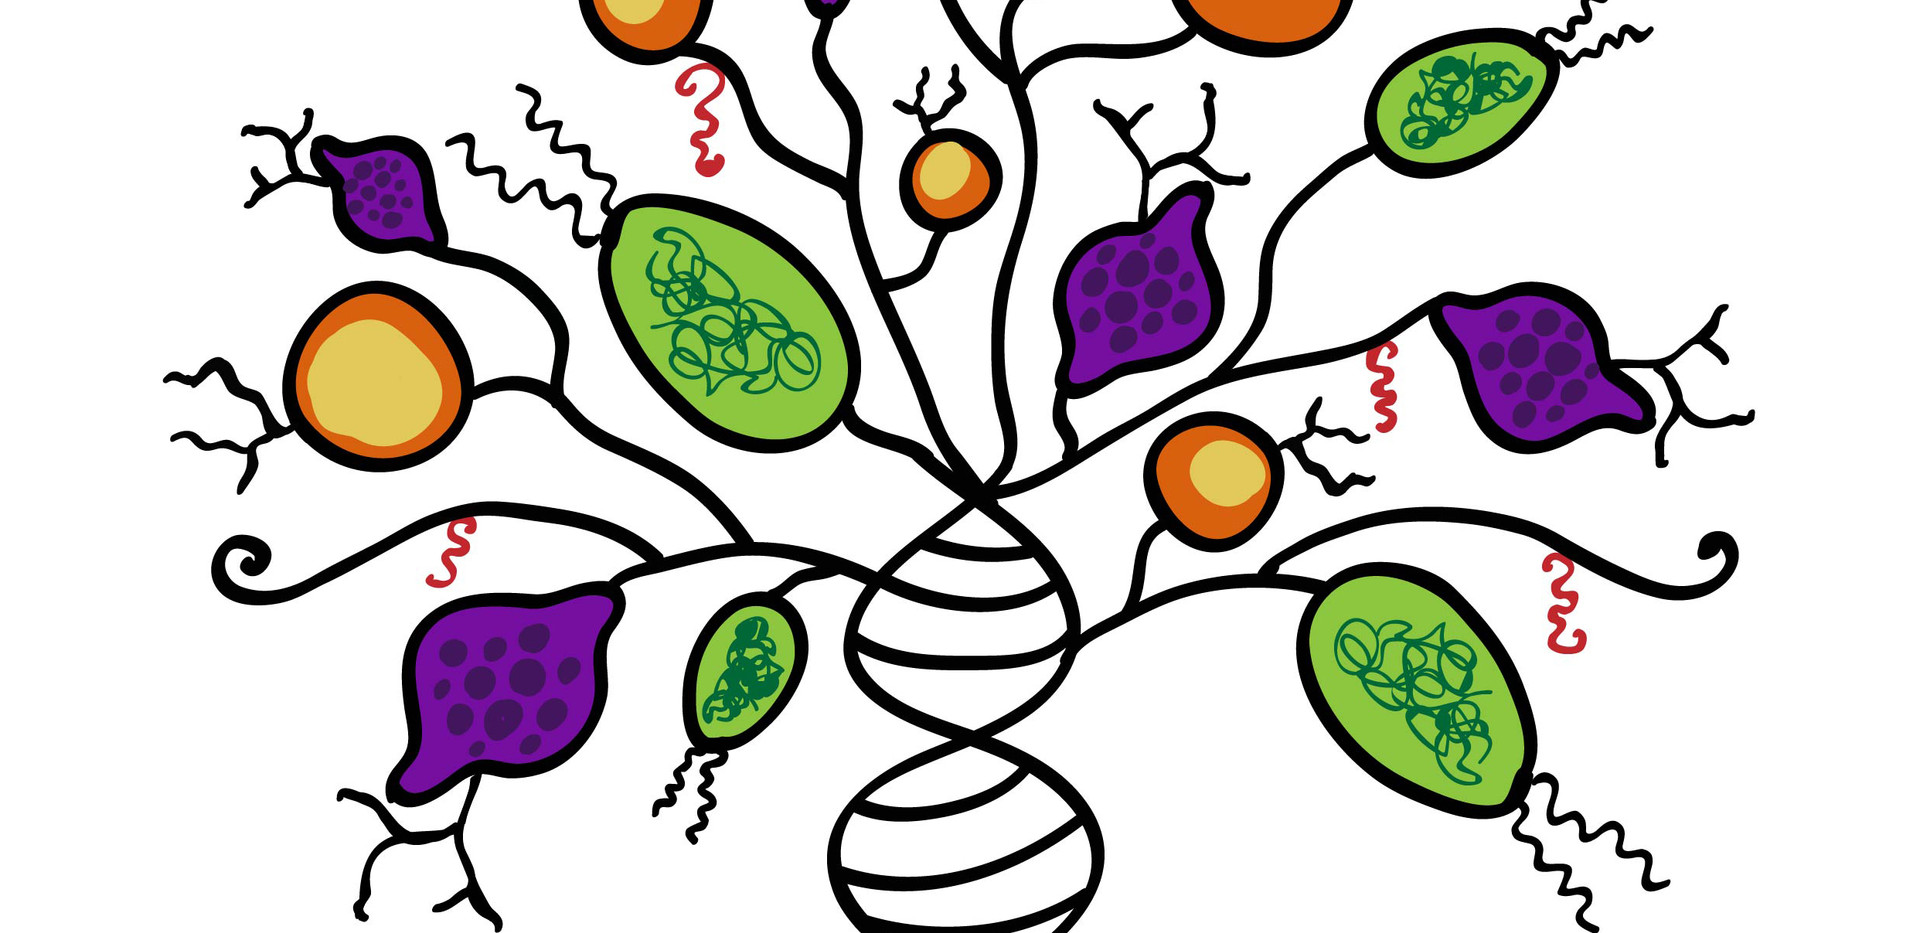 pathogen tree of life